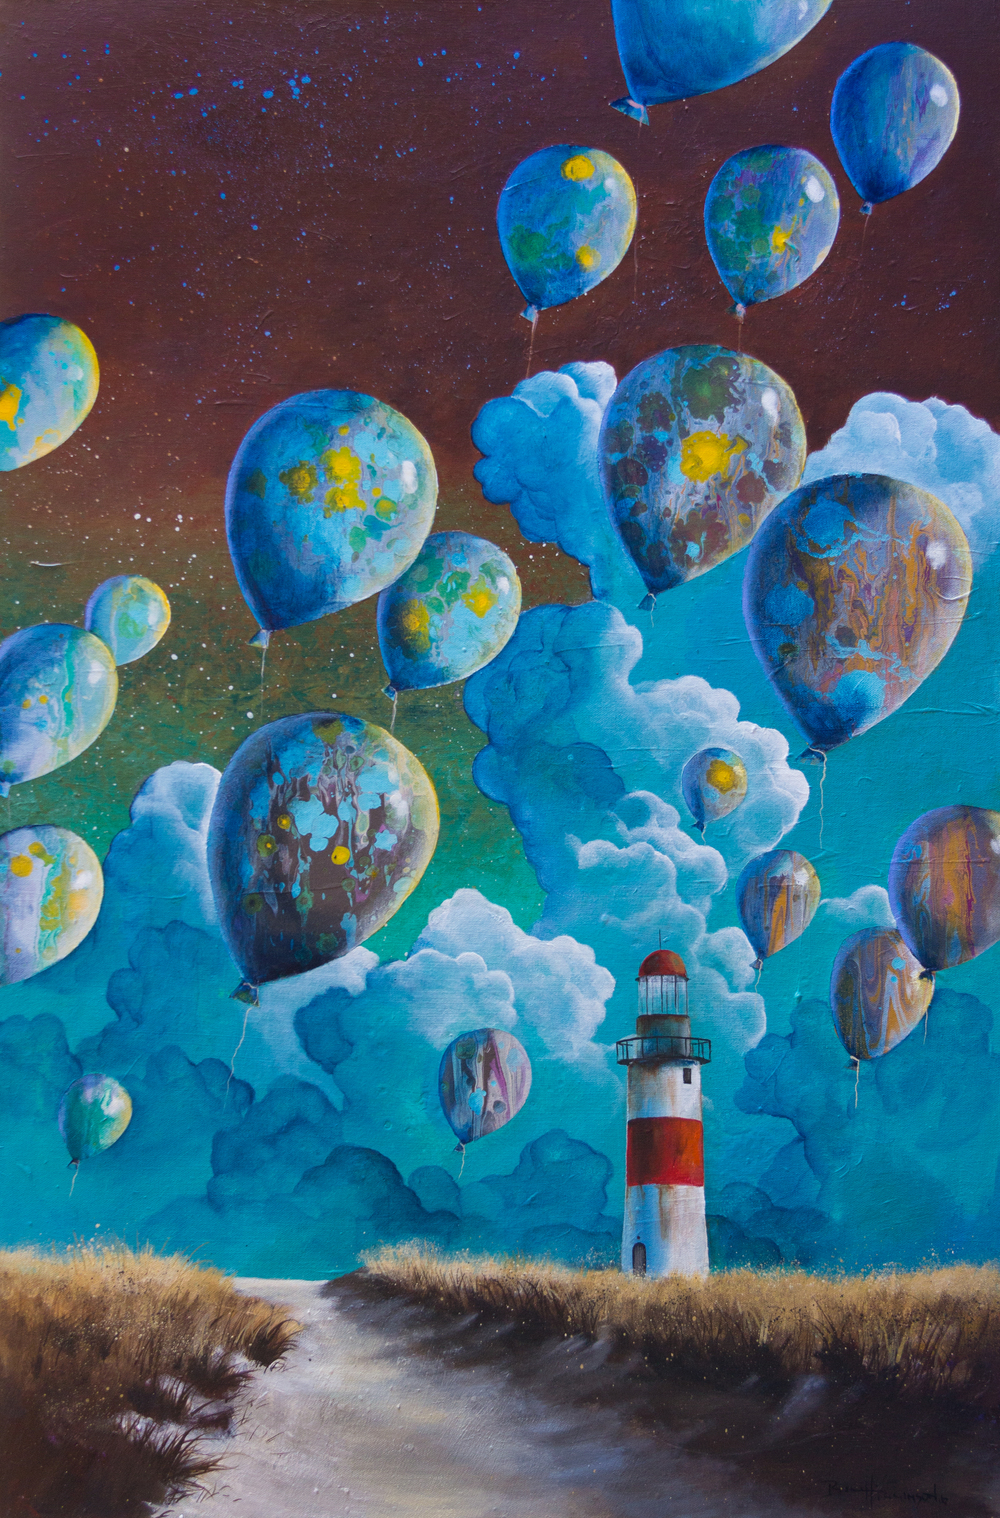 bill-higginson/art/light-s-out/abstract-childrens-fantasy-surrealism